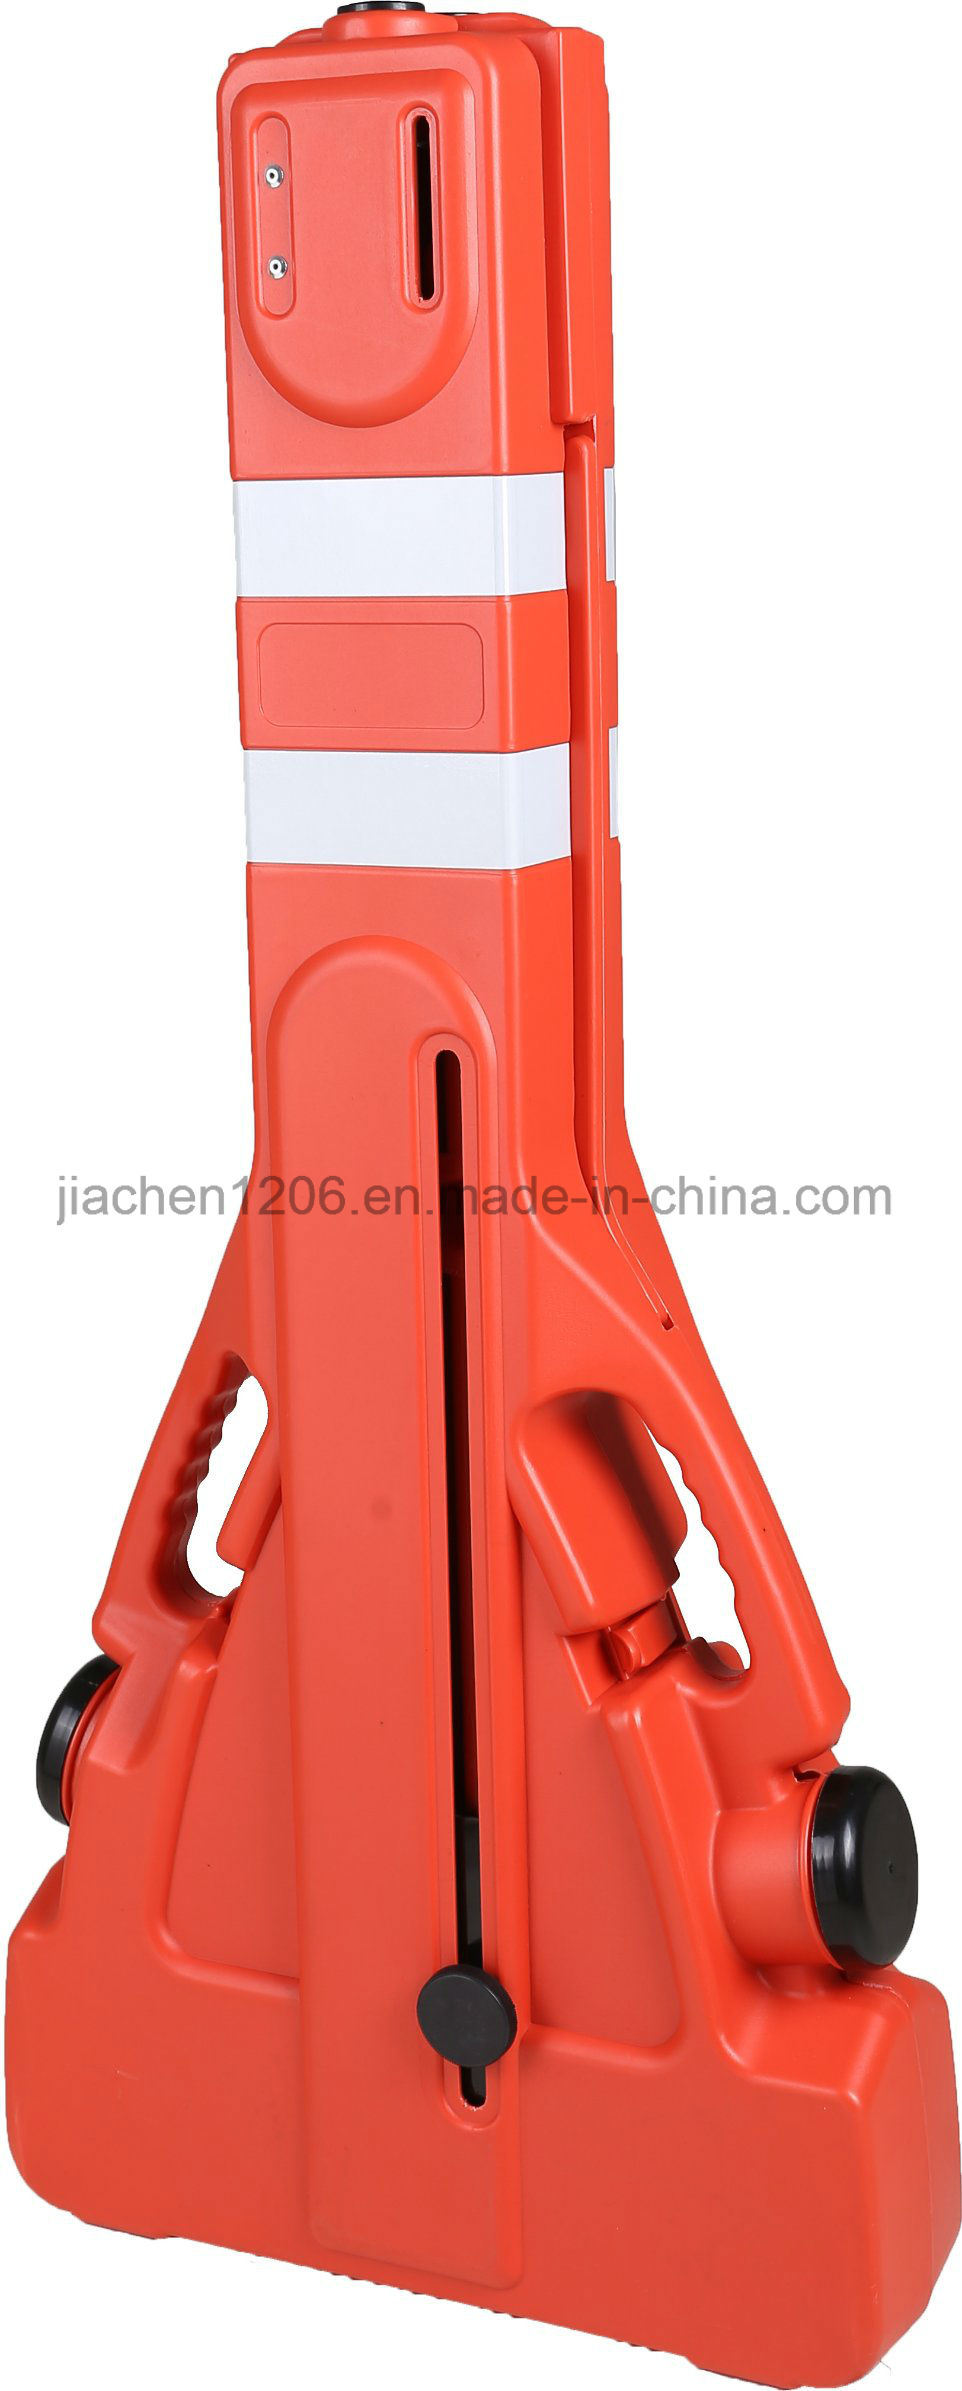 Wholesale Road Barricades Manufacturers Plastic Traffic Pedestrian Expandable Barricade